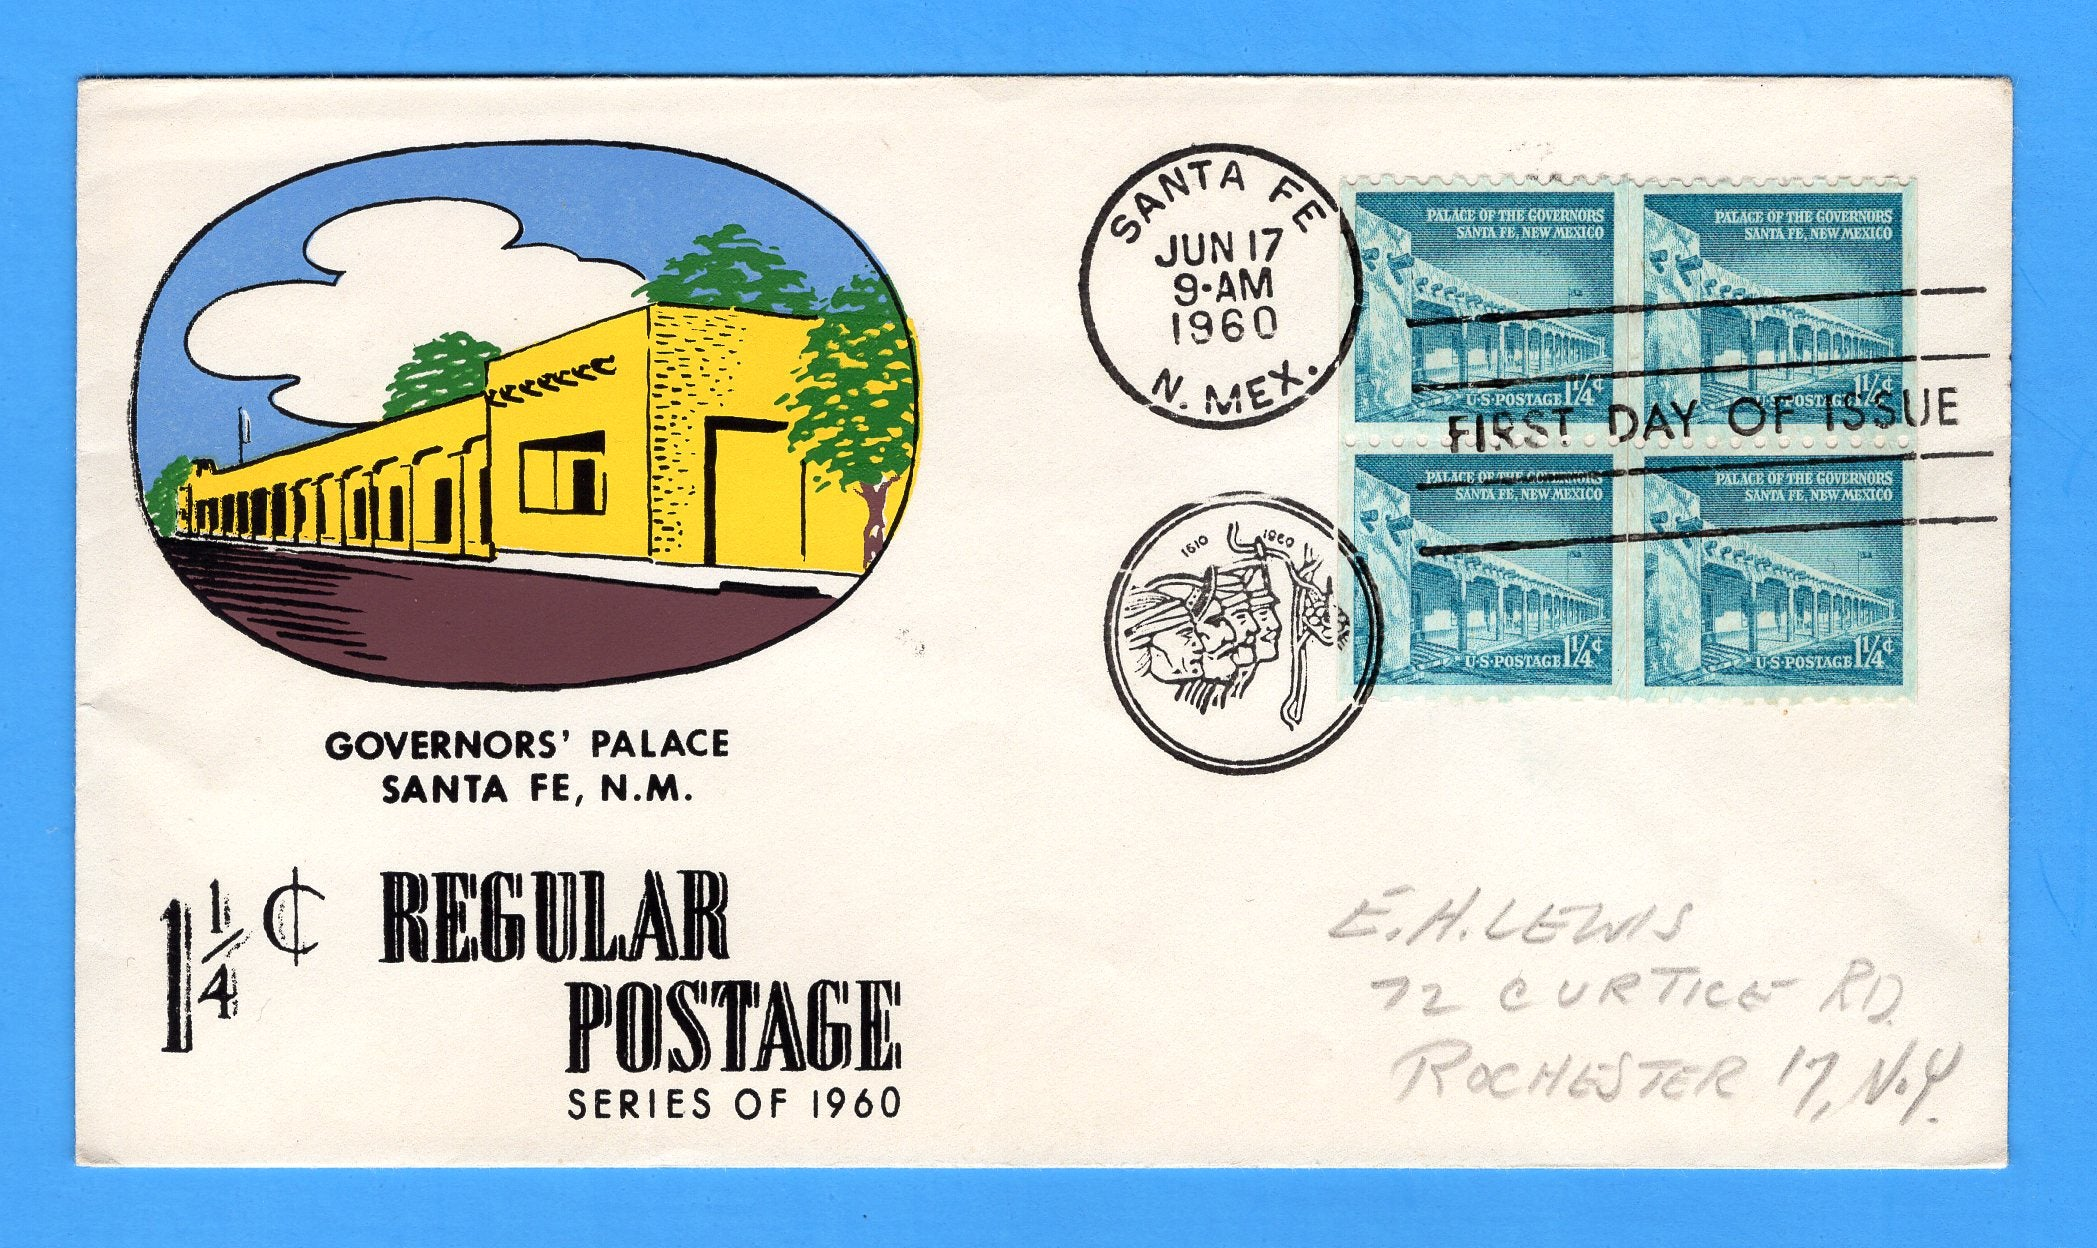 Scott 1054A Palace of Governors Silk Screen First Day Cover by Eric Lewis - Very Rare - Only Three Known Copies